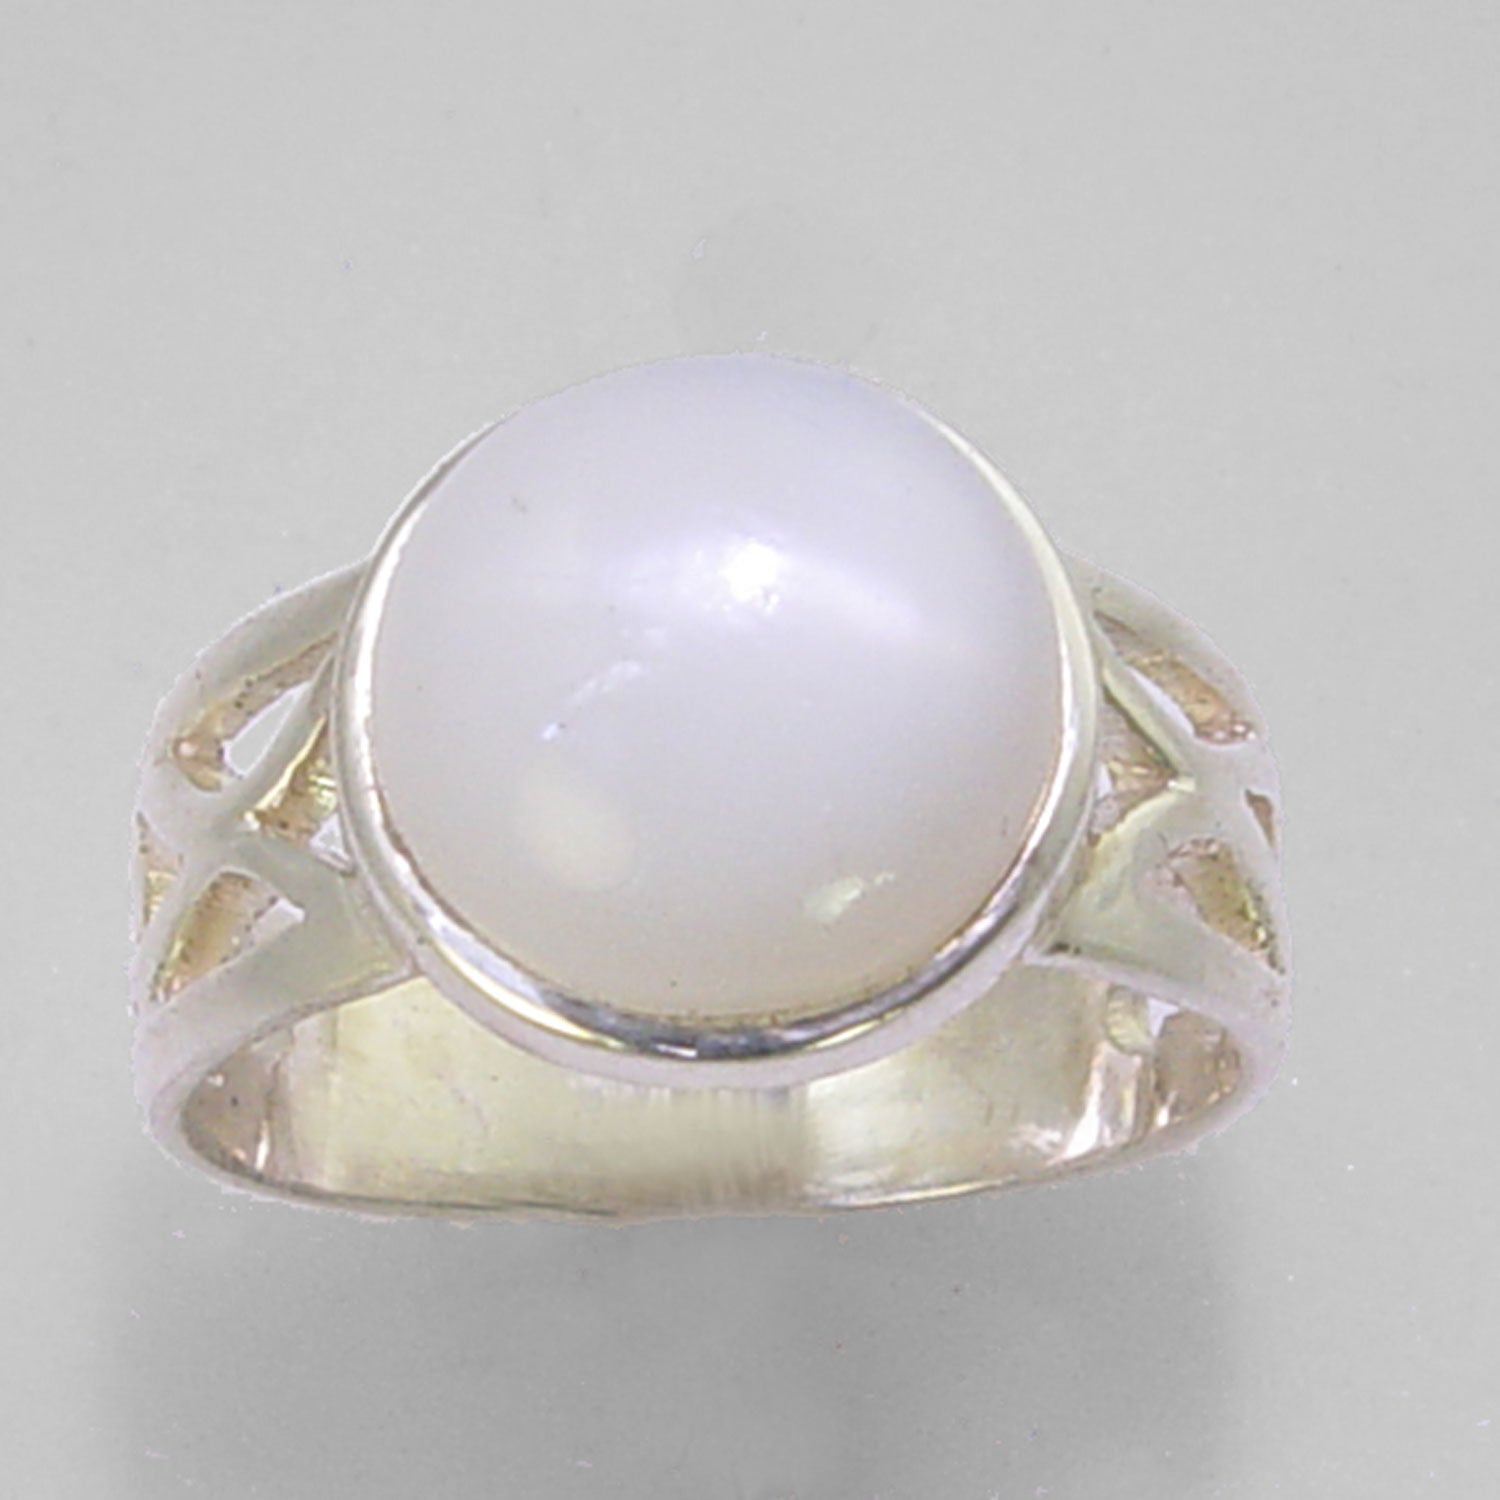 Moonstone Cat's Eye 4.35 ct Round Cab Sterling Silver Ring, Size 7